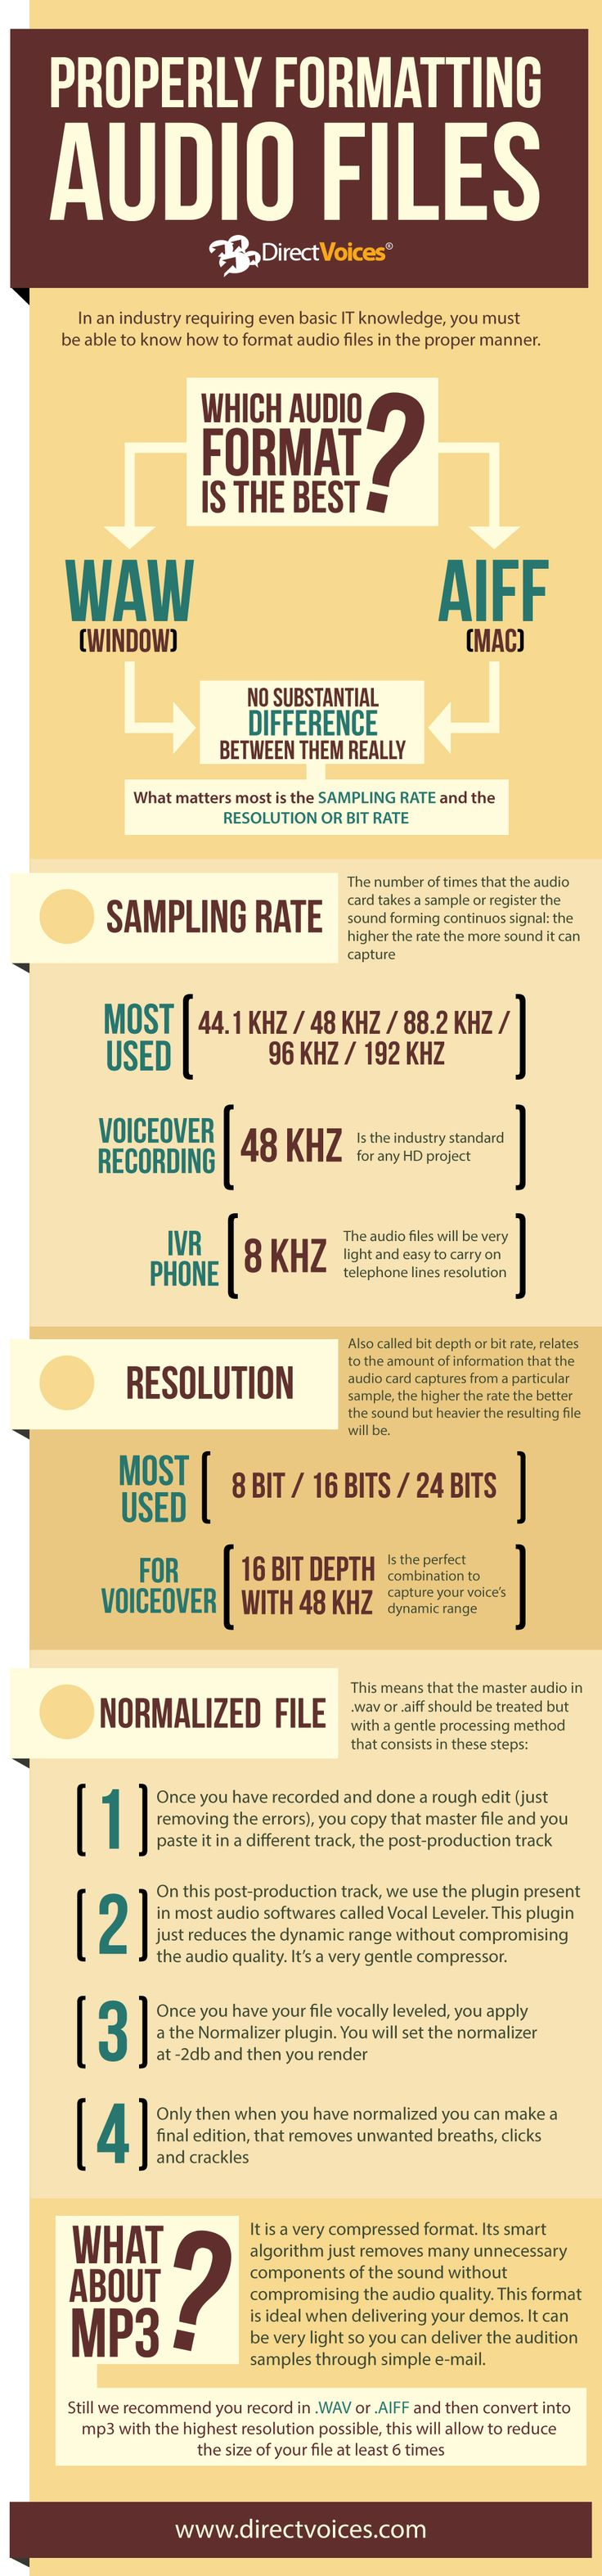 Properly Formatting Audio Files. Visit our state of the art showroom at 9340 W. Sahara Avenue, Suite 100, Las Vegas, NV 89117 or call us @ (702) 875-5561 if you have any audio or video related questions.